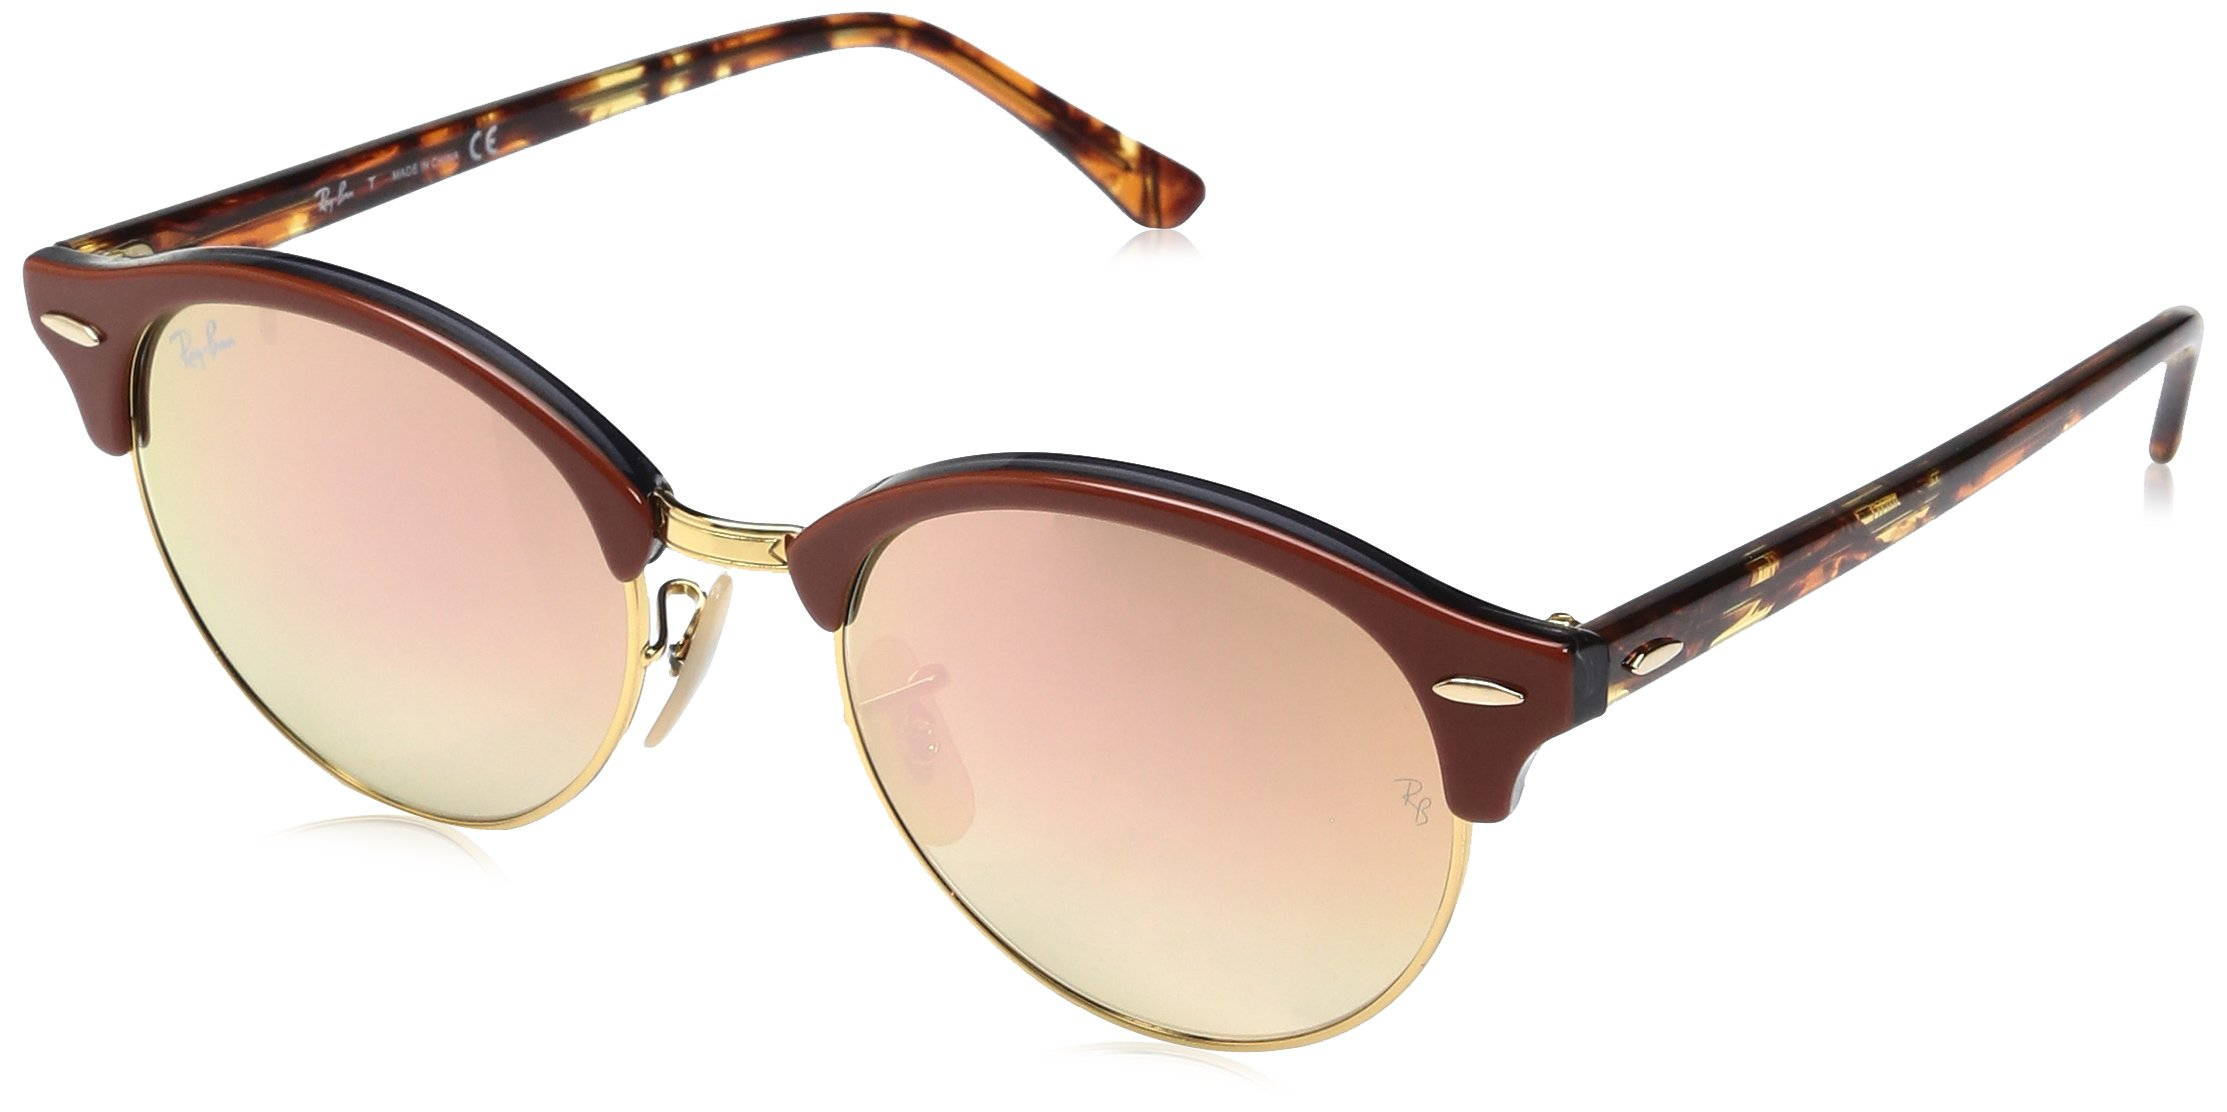 Ray-Ban Clubround Round Sunglasses, Top Brown Trasparent Grey, 51 mm